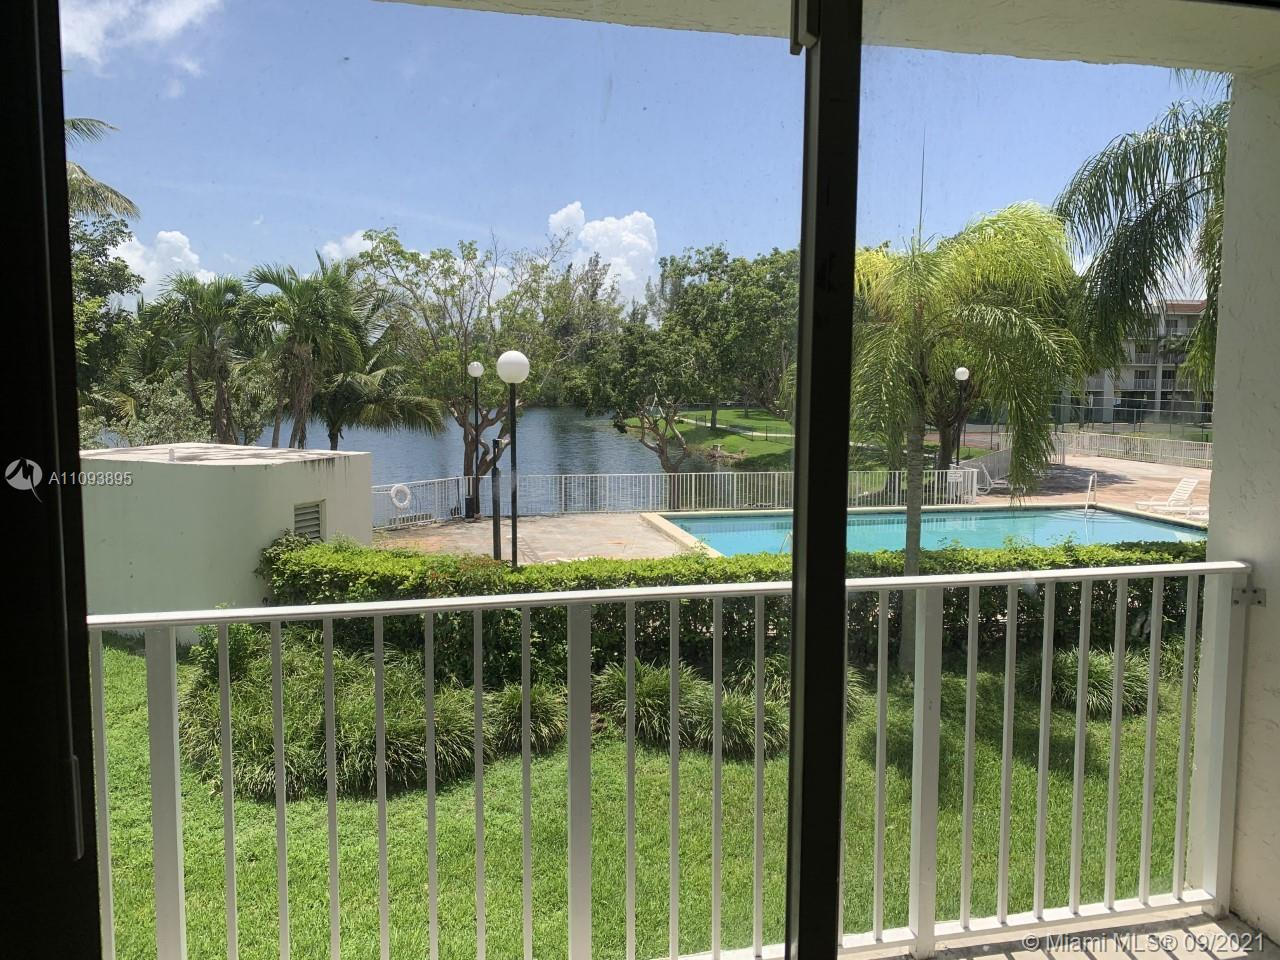 Fantastic opportunity to rent in Cutler Bay. This 1 bedroom 1 bath unit is only 3 miles from Black Point Marina. Short drive to Publix, restaurants and parks.